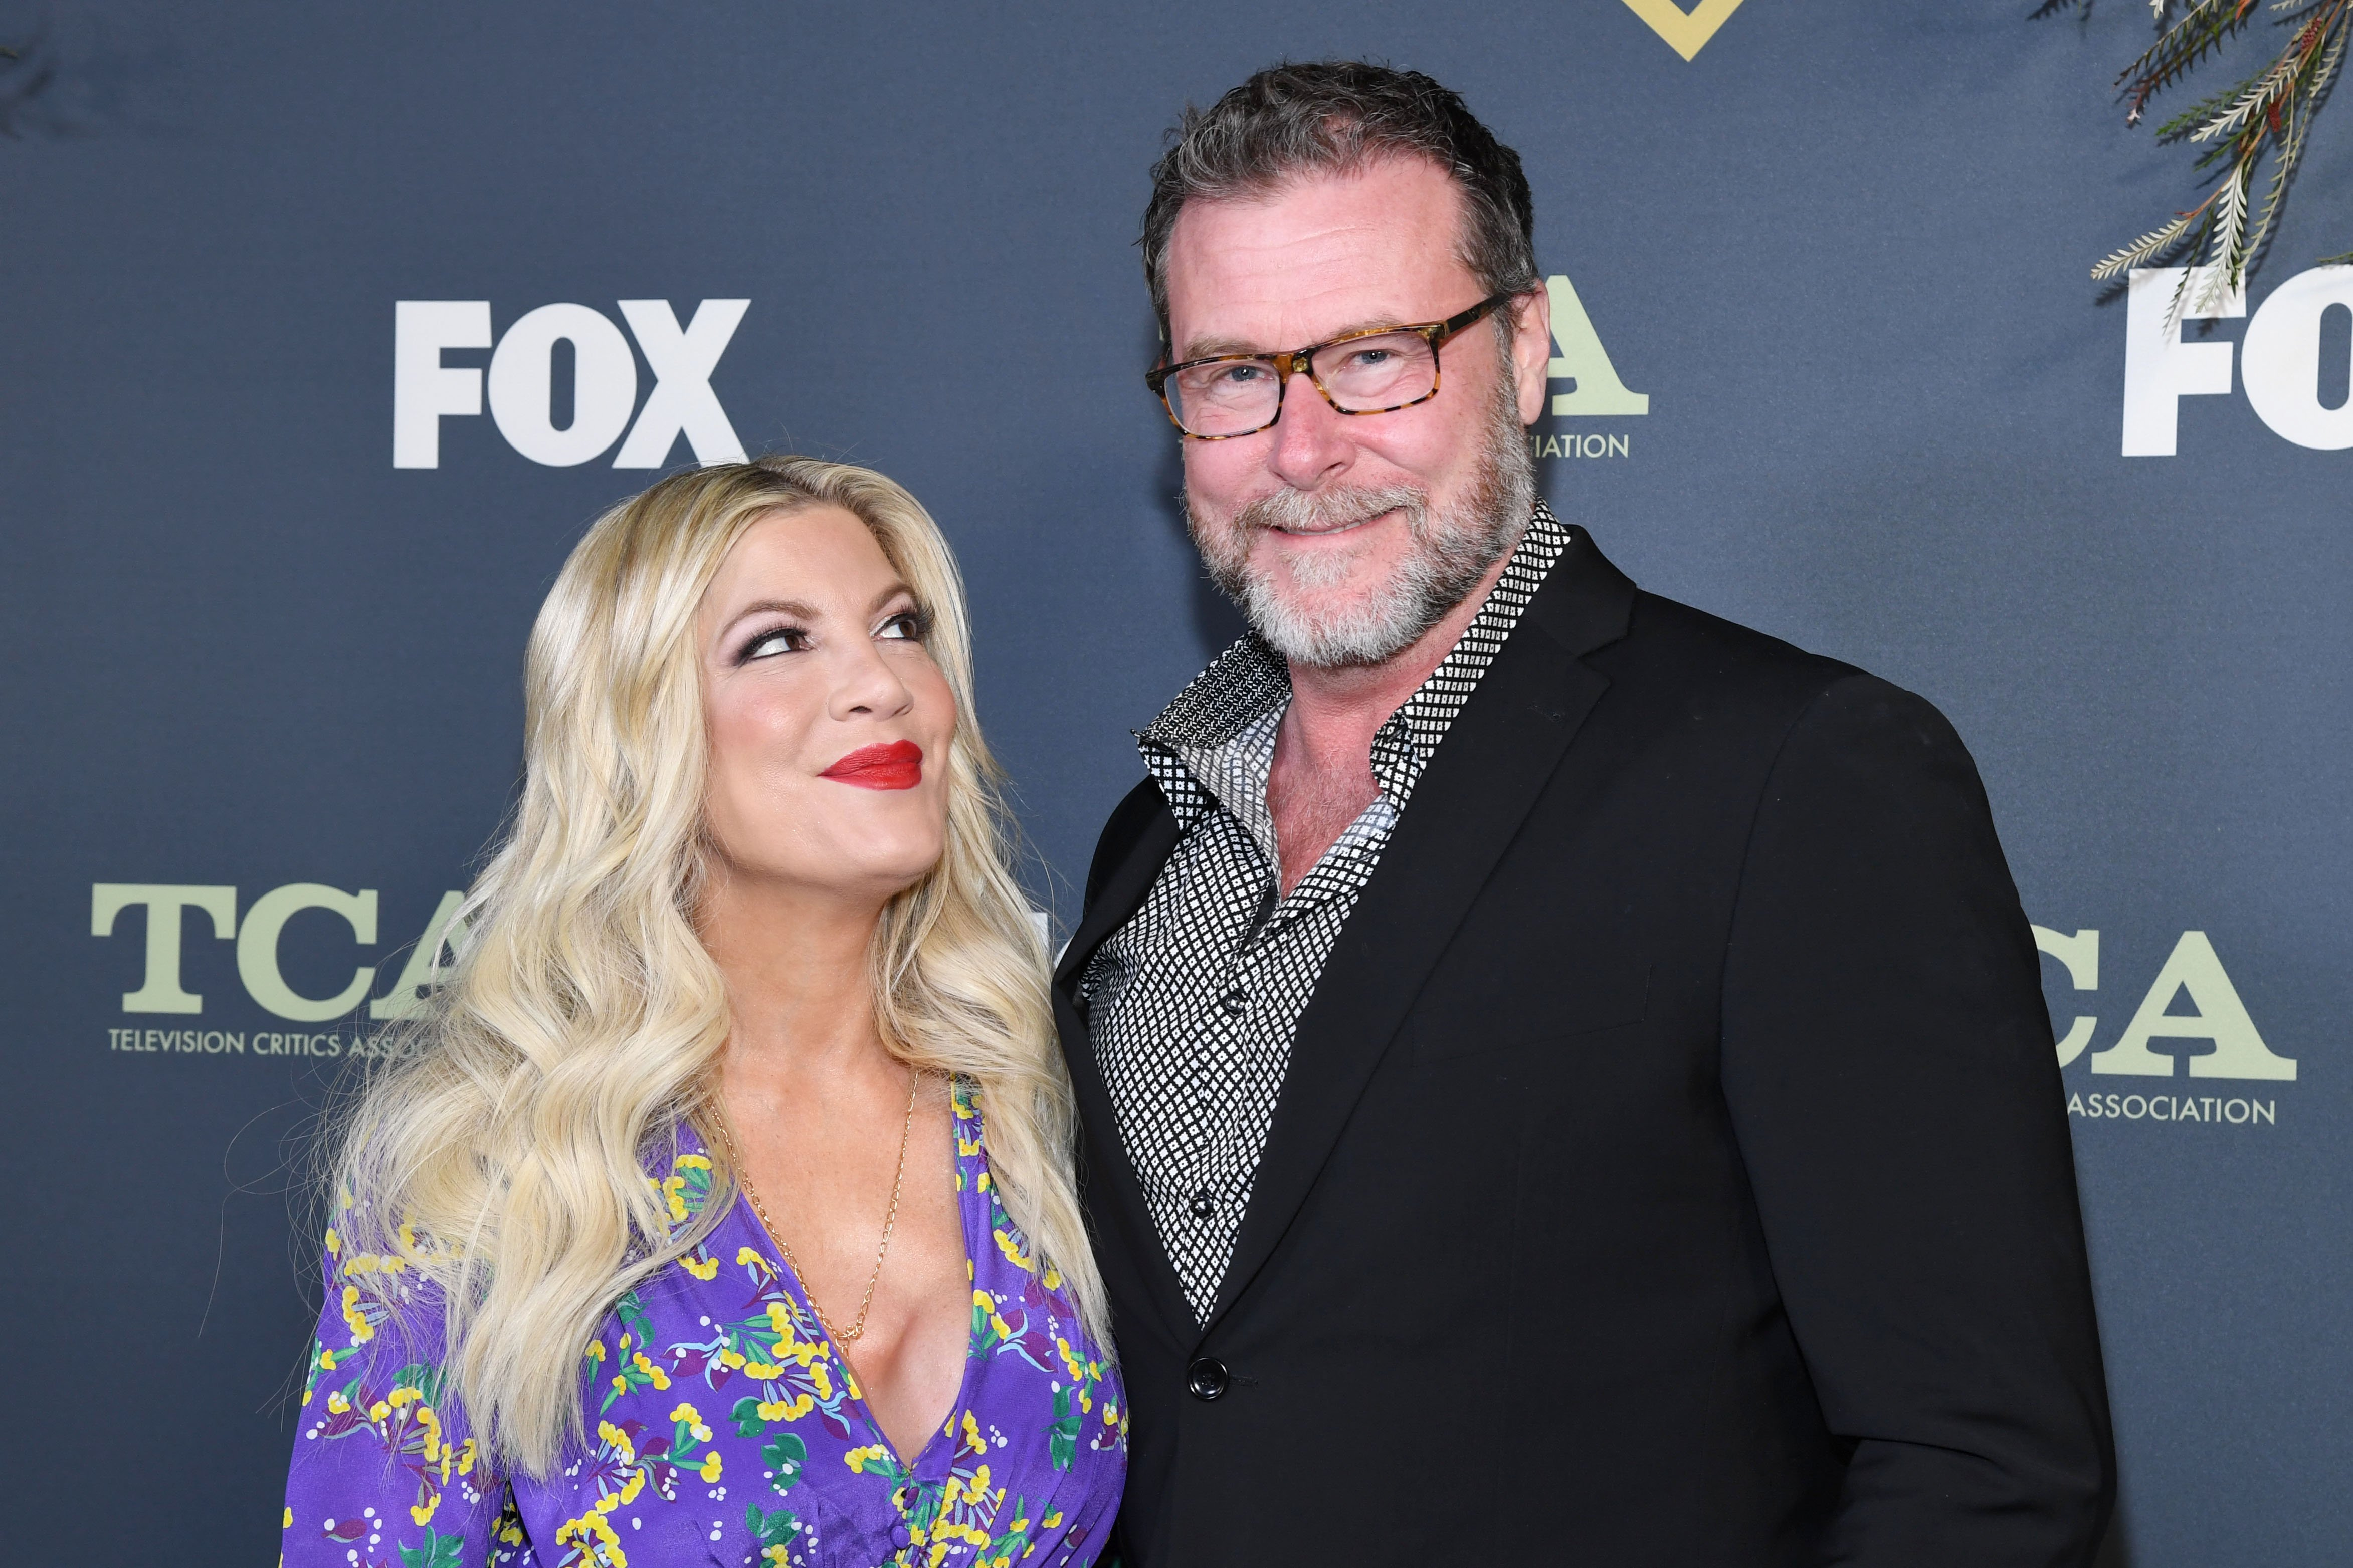 Tori Spelling and Dean McDermott attend Fox Winter TCA at The Fig House on February 06, 2019 in Los Angeles, California | Photo: Getty Images